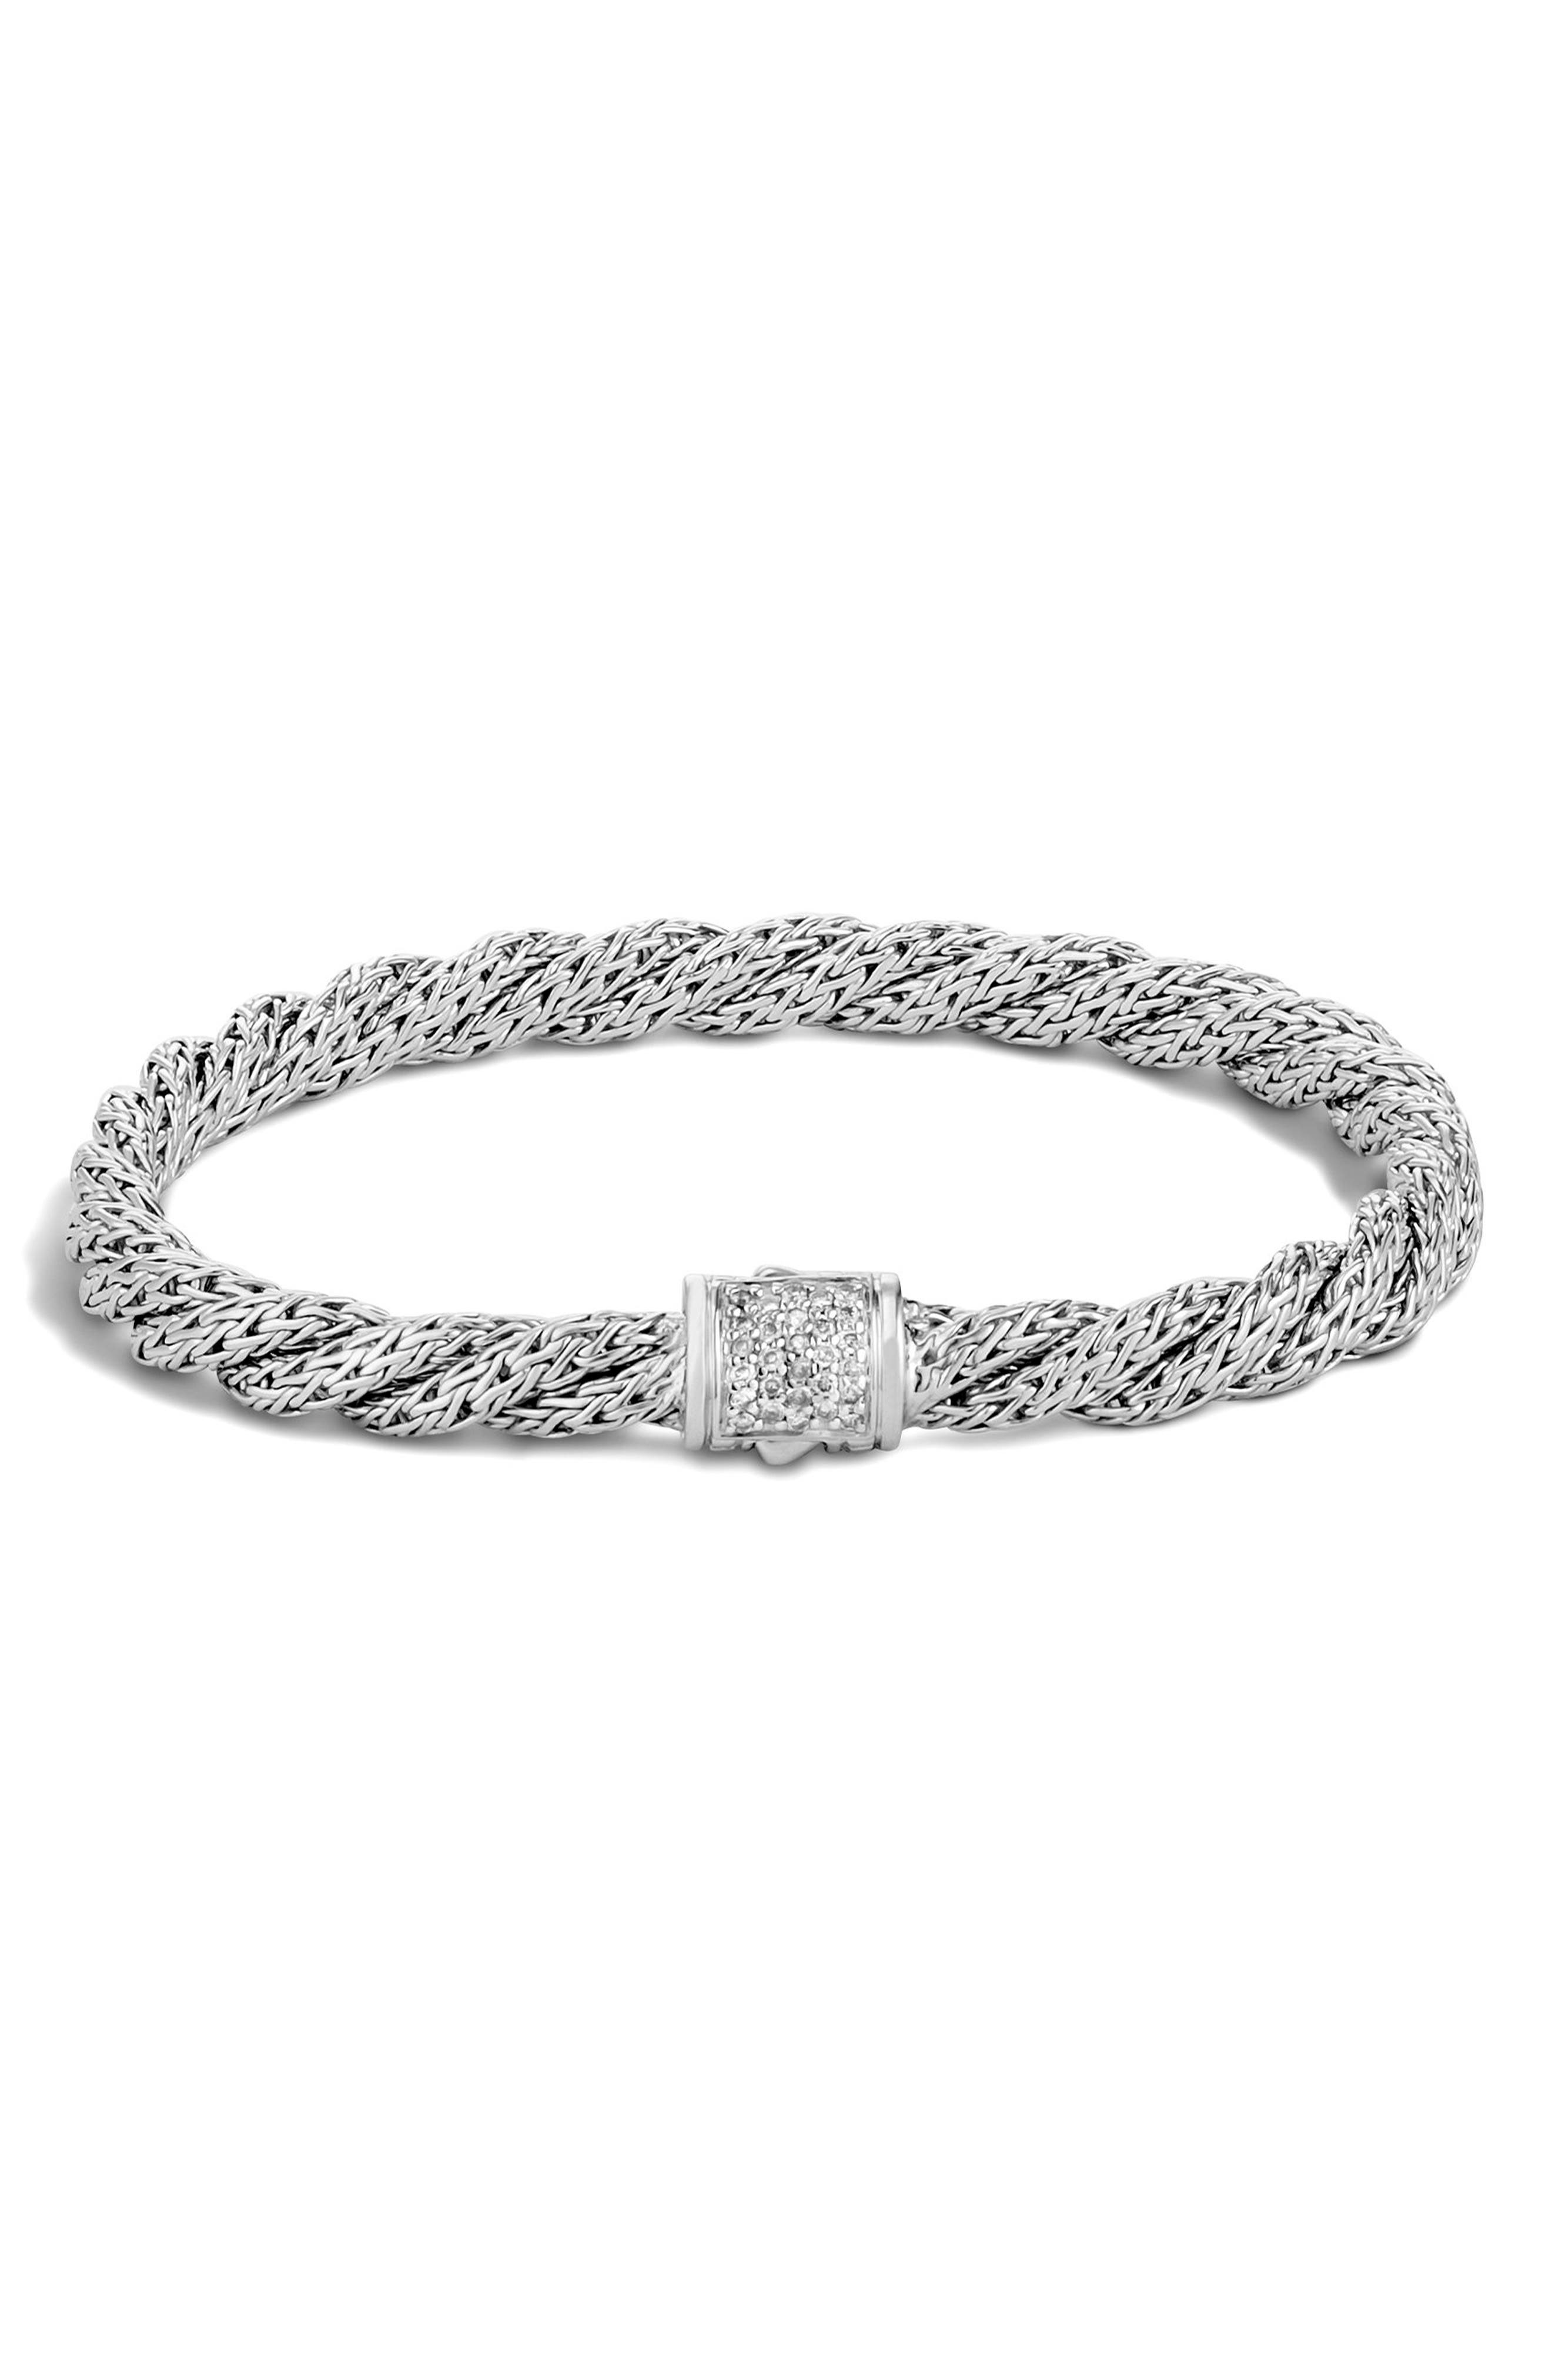 Twist Chain 5mm Bracelet with Diamonds,                         Main,                         color, Silver/ Diamond